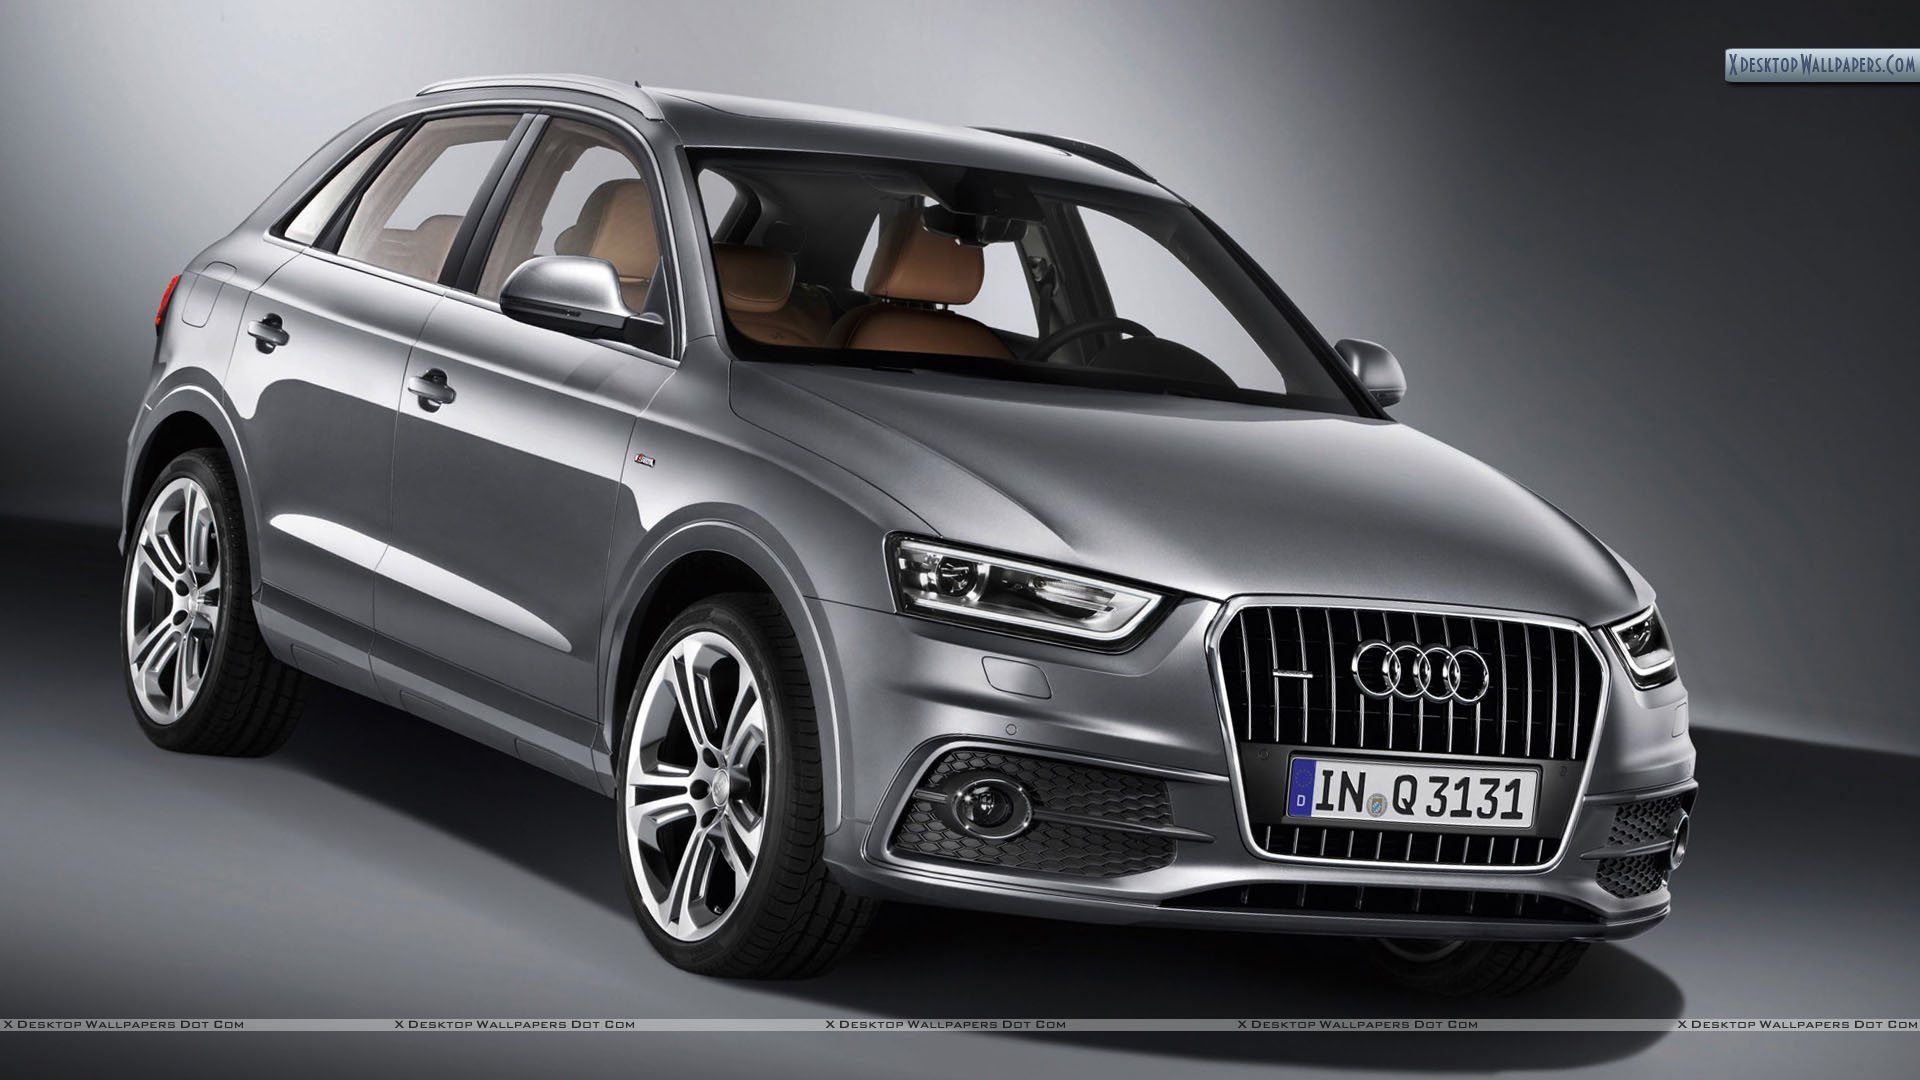 2012 audi q3 quattro s line front pose in metalic grey wallpaper. Black Bedroom Furniture Sets. Home Design Ideas